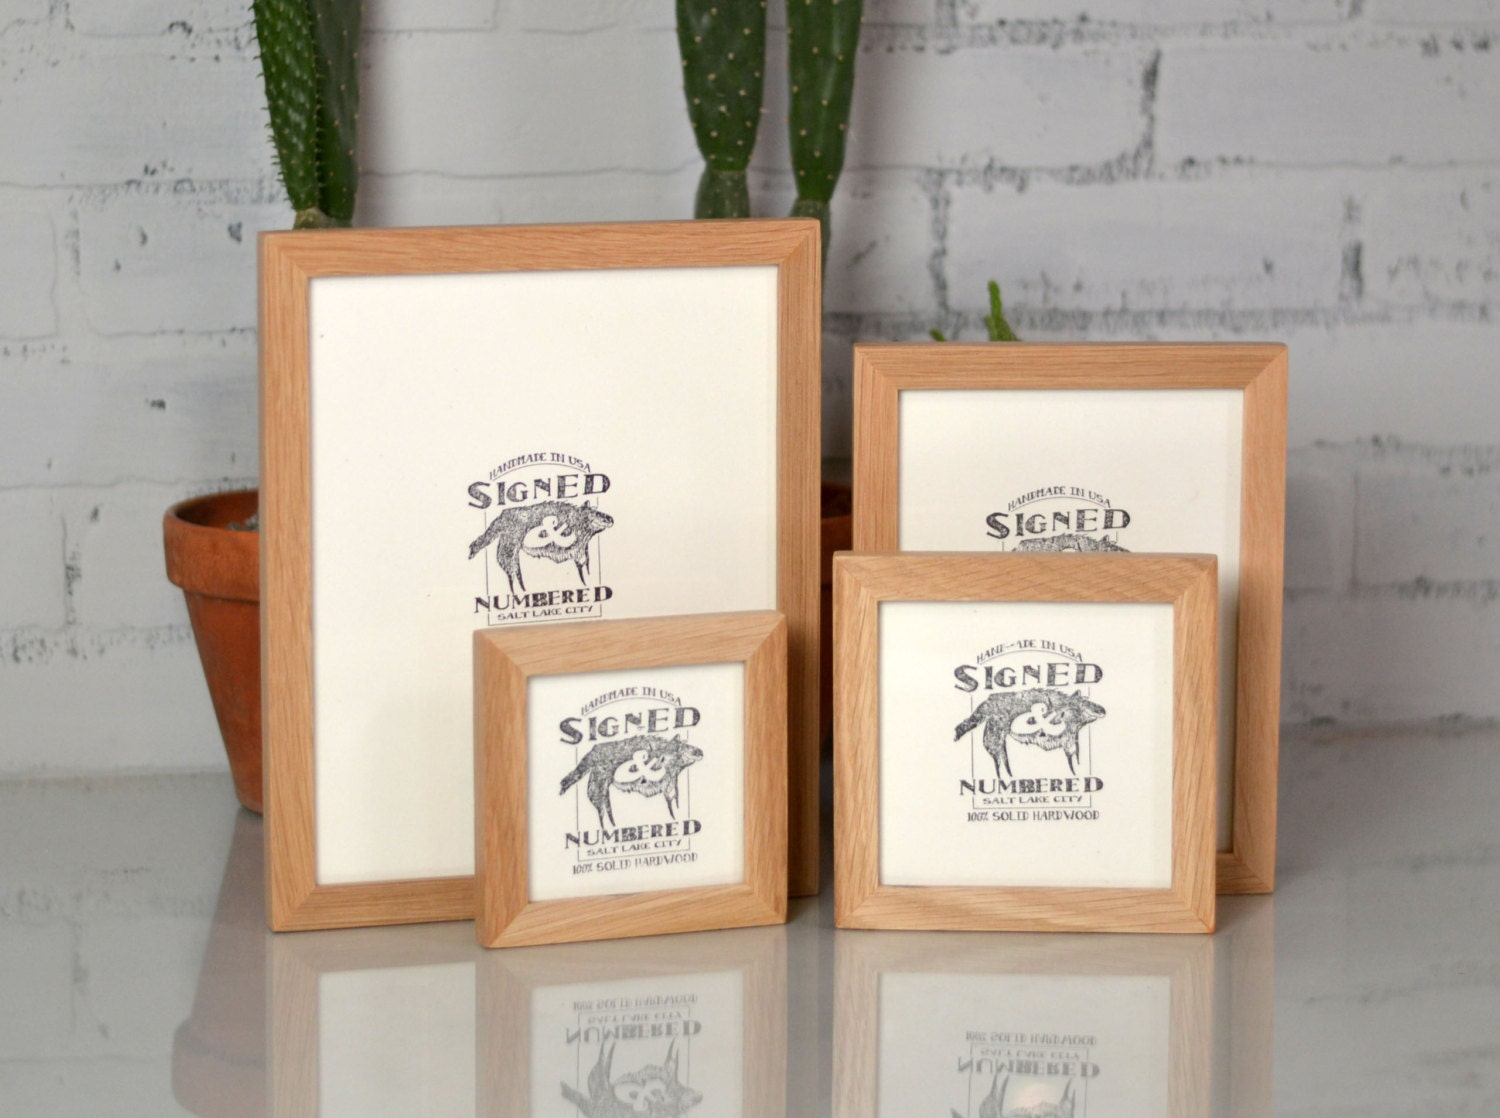 Signed and numbered basic picture frame built from natural oak signed and numbered basic picture frame built from natural oak choose frame size 4x4 4x6 5x5 6x6 5x7 6x8 7x7 8x8 8x10 jeuxipadfo Gallery